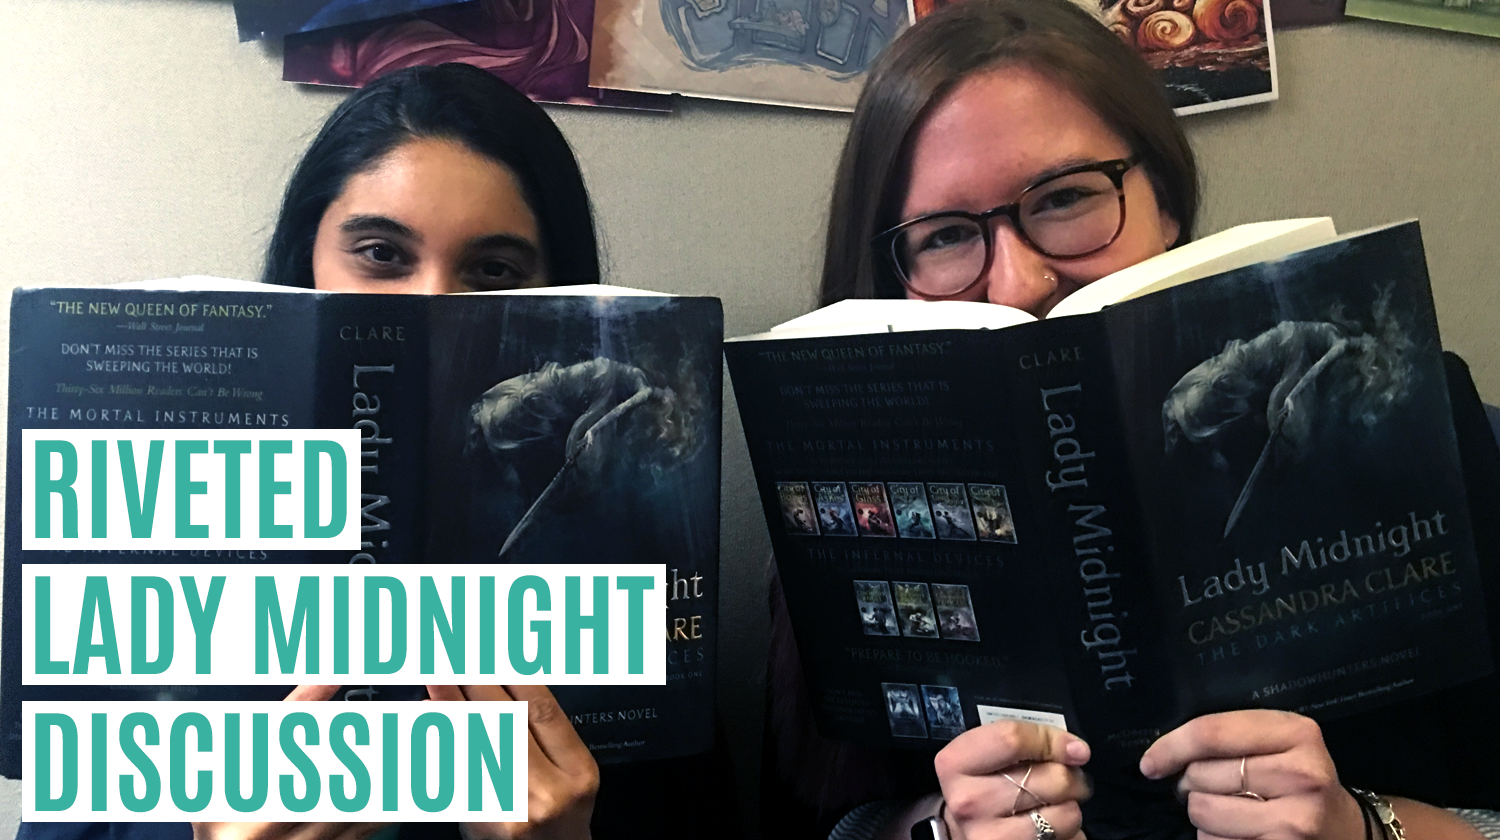 Riveted Lady Midnight Discussion | Riveted